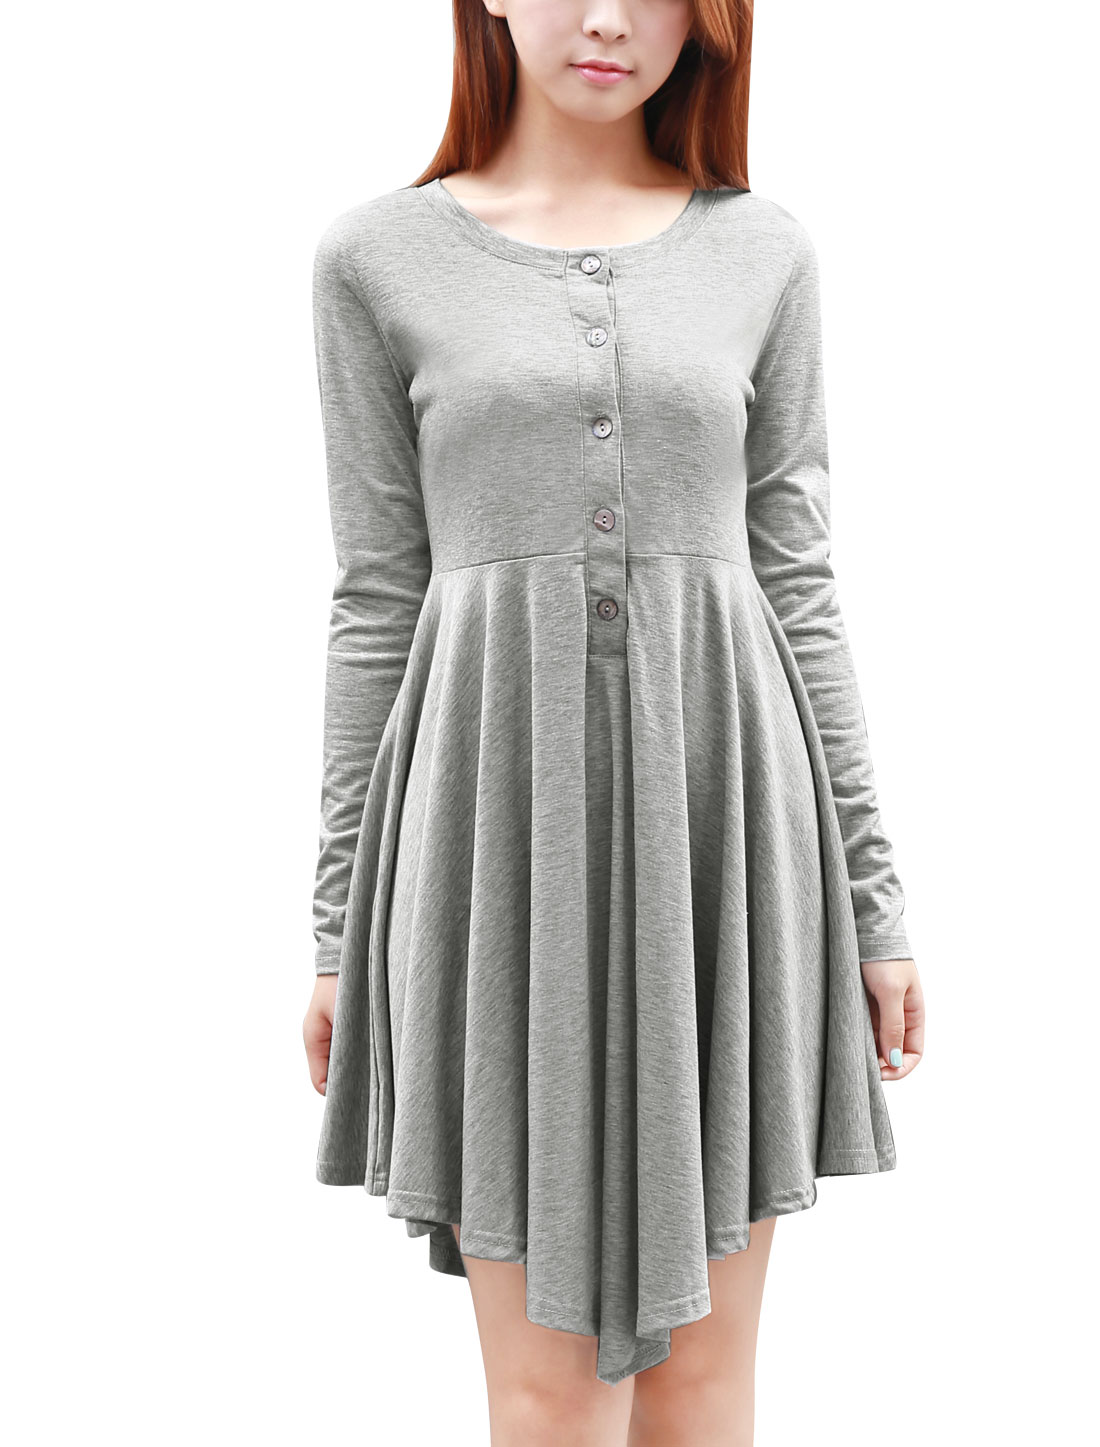 Women Round Neck Casual Stretchy Irregular Hem Soft Gray Long Sleeve Dress M